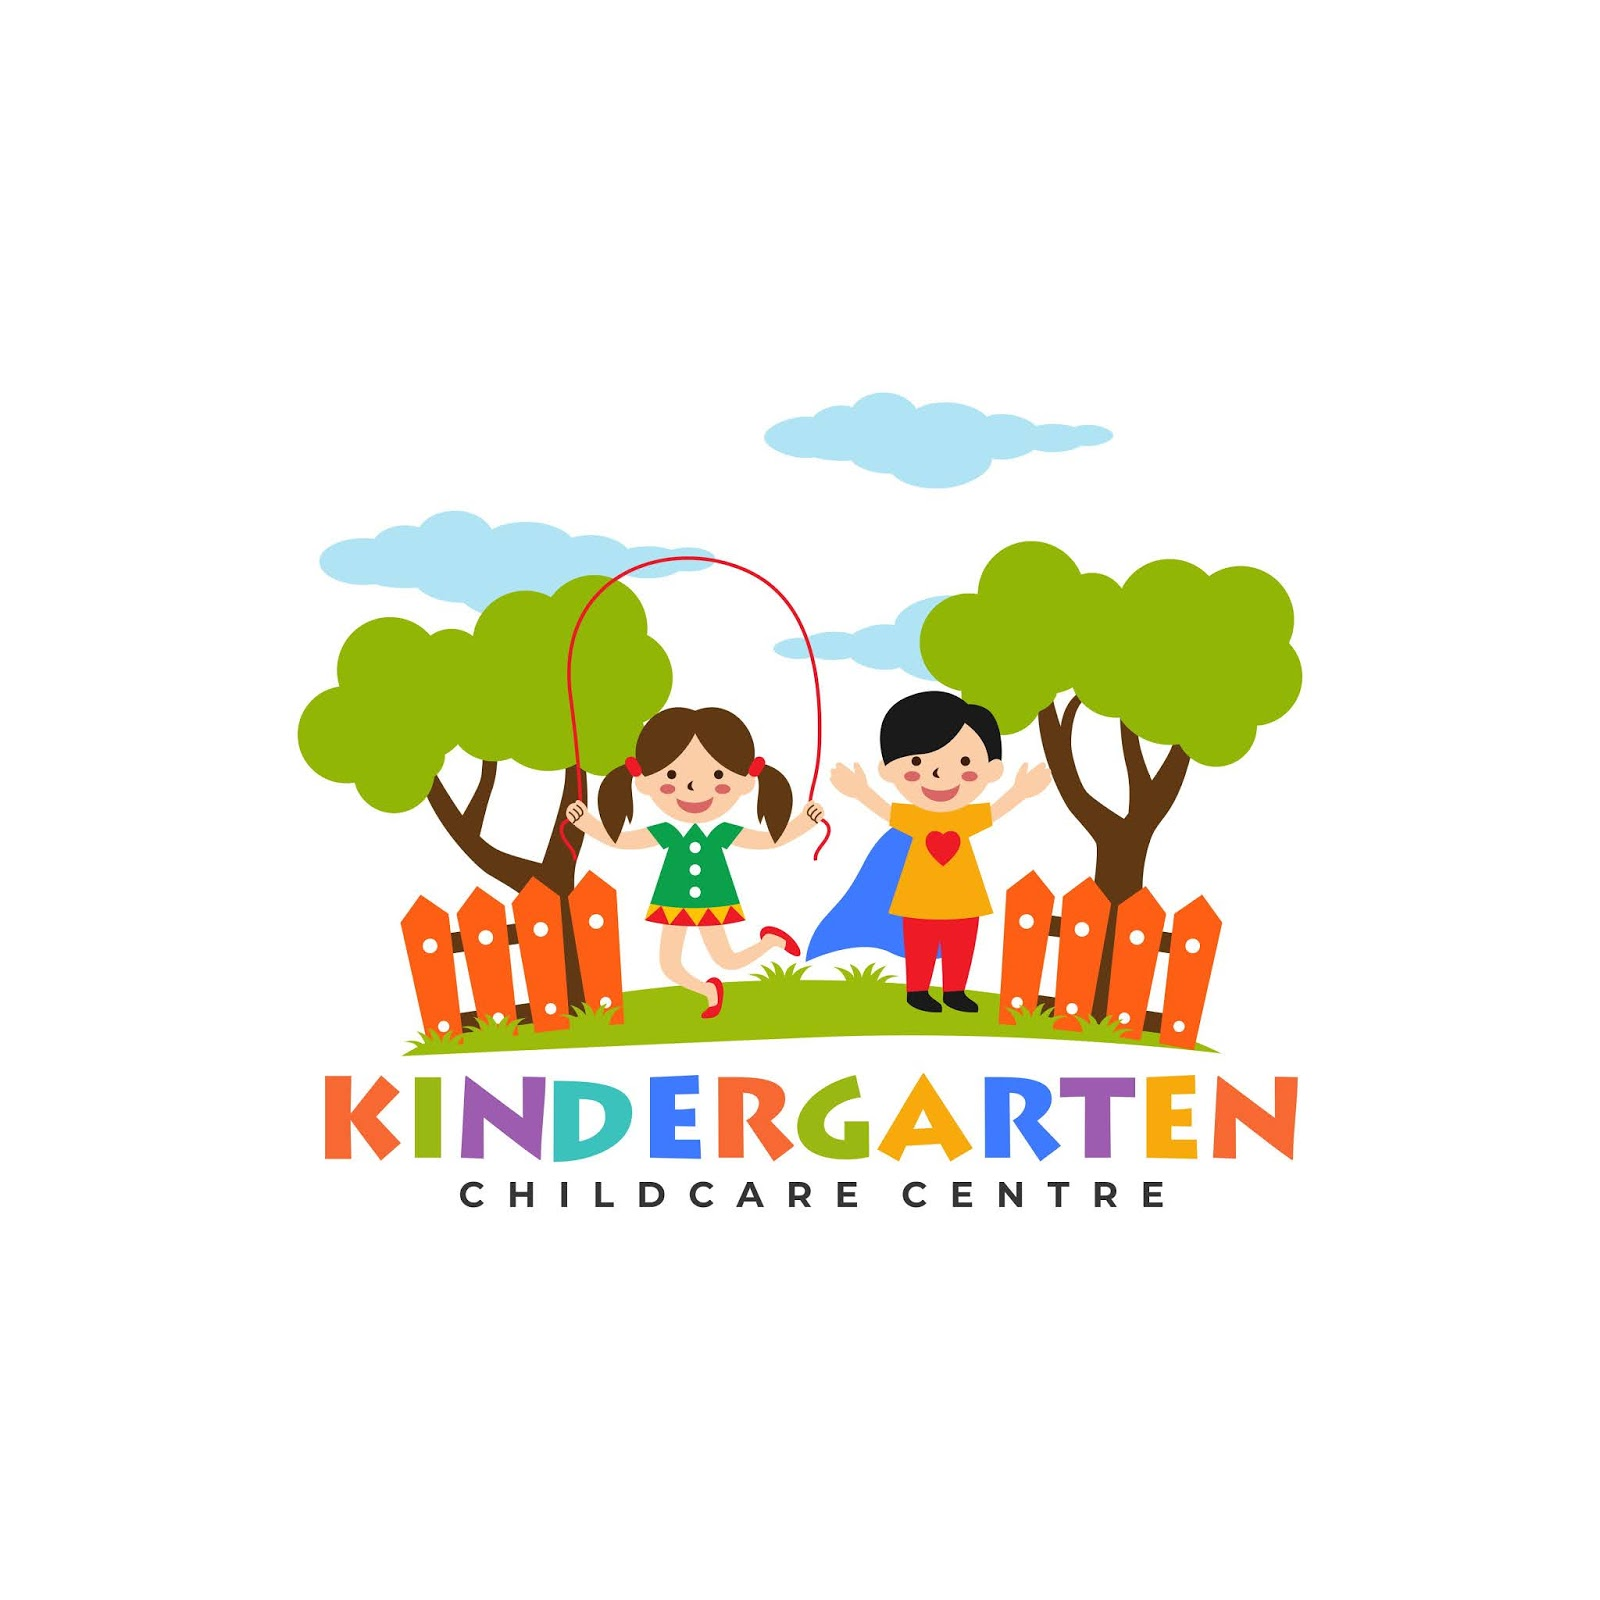 Kindergarten Logo Templates Free Download Vector CDR, AI, EPS and PNG Formats